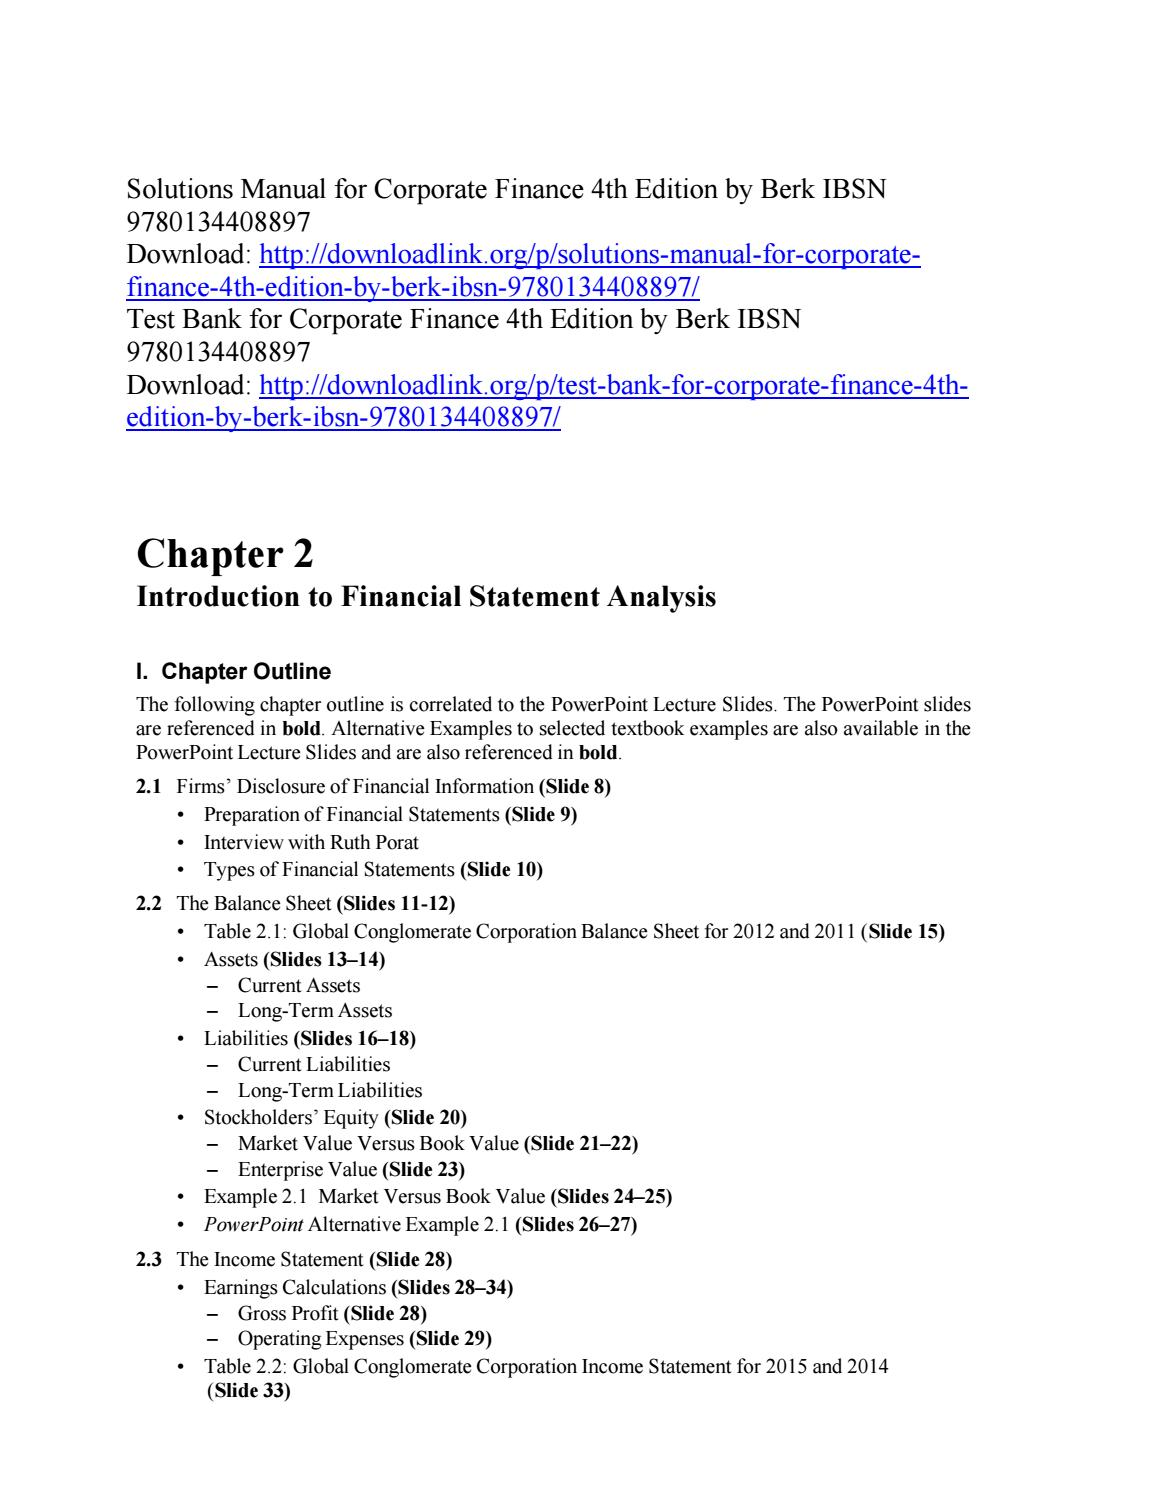 Solutions Manual for Corporate Finance 4th Edition by Berk IBSN  9780134408897 by ys073 - issuu